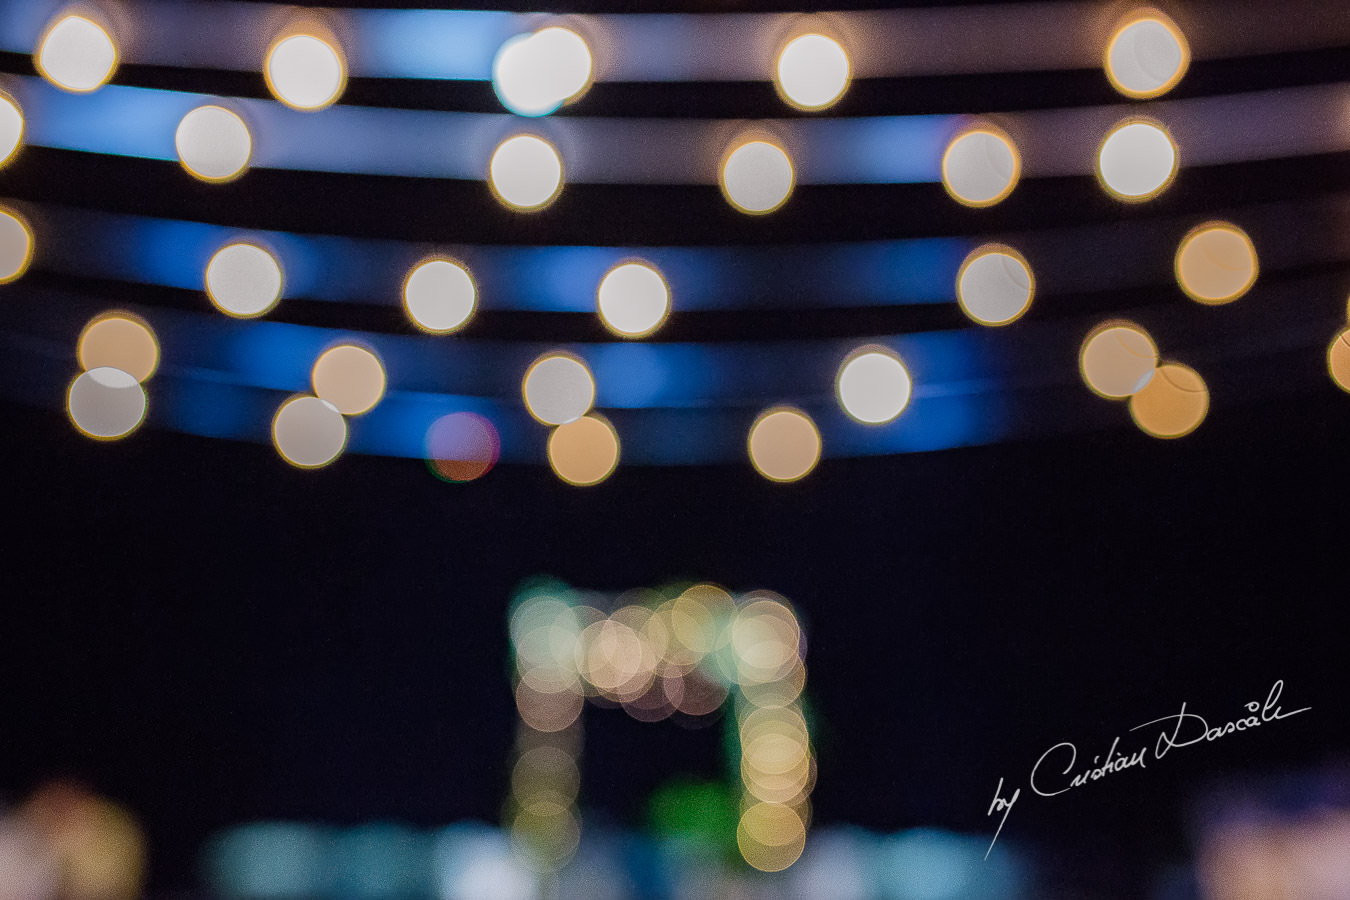 Wedding venue details by night captured during a wedding photography at the Lighthouse Limassol, by Cyprus Photographer Cristian Dascalu.